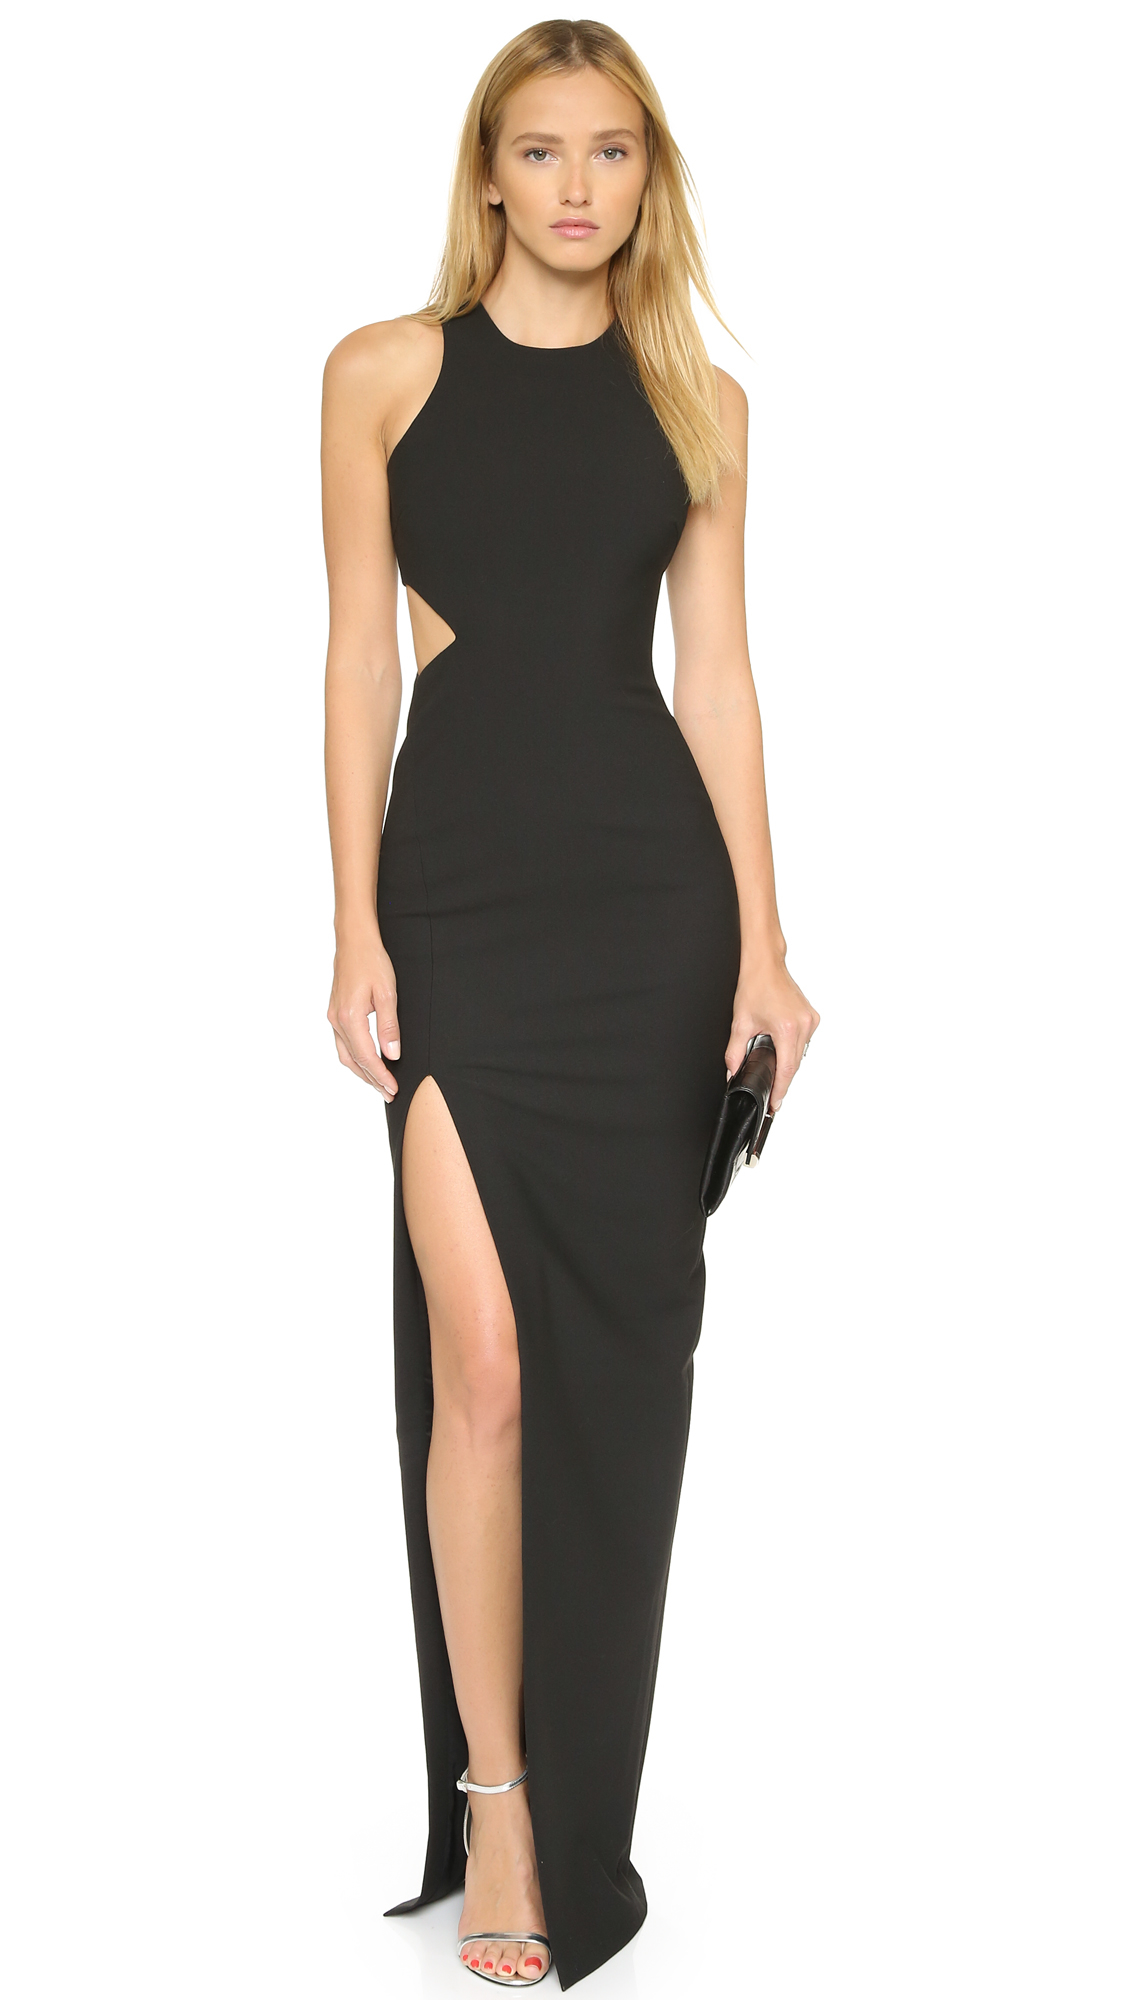 Lyst - Elizabeth And James Long Guilia Dress - Black in Black